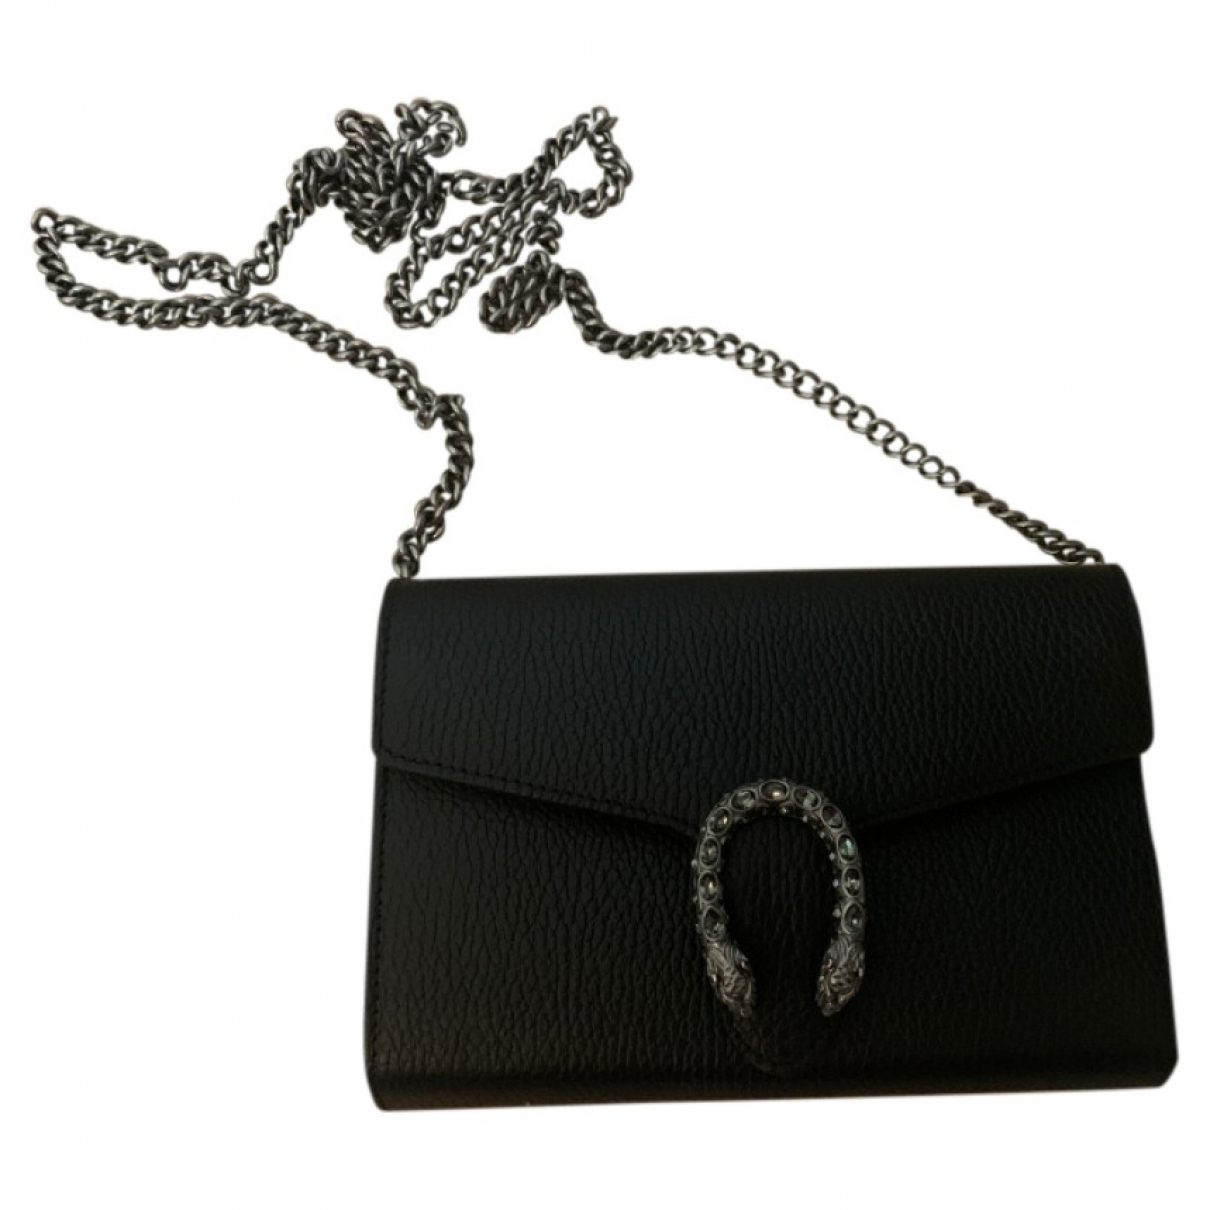 Gucci Dionysus Black Leather handbag for Women \N